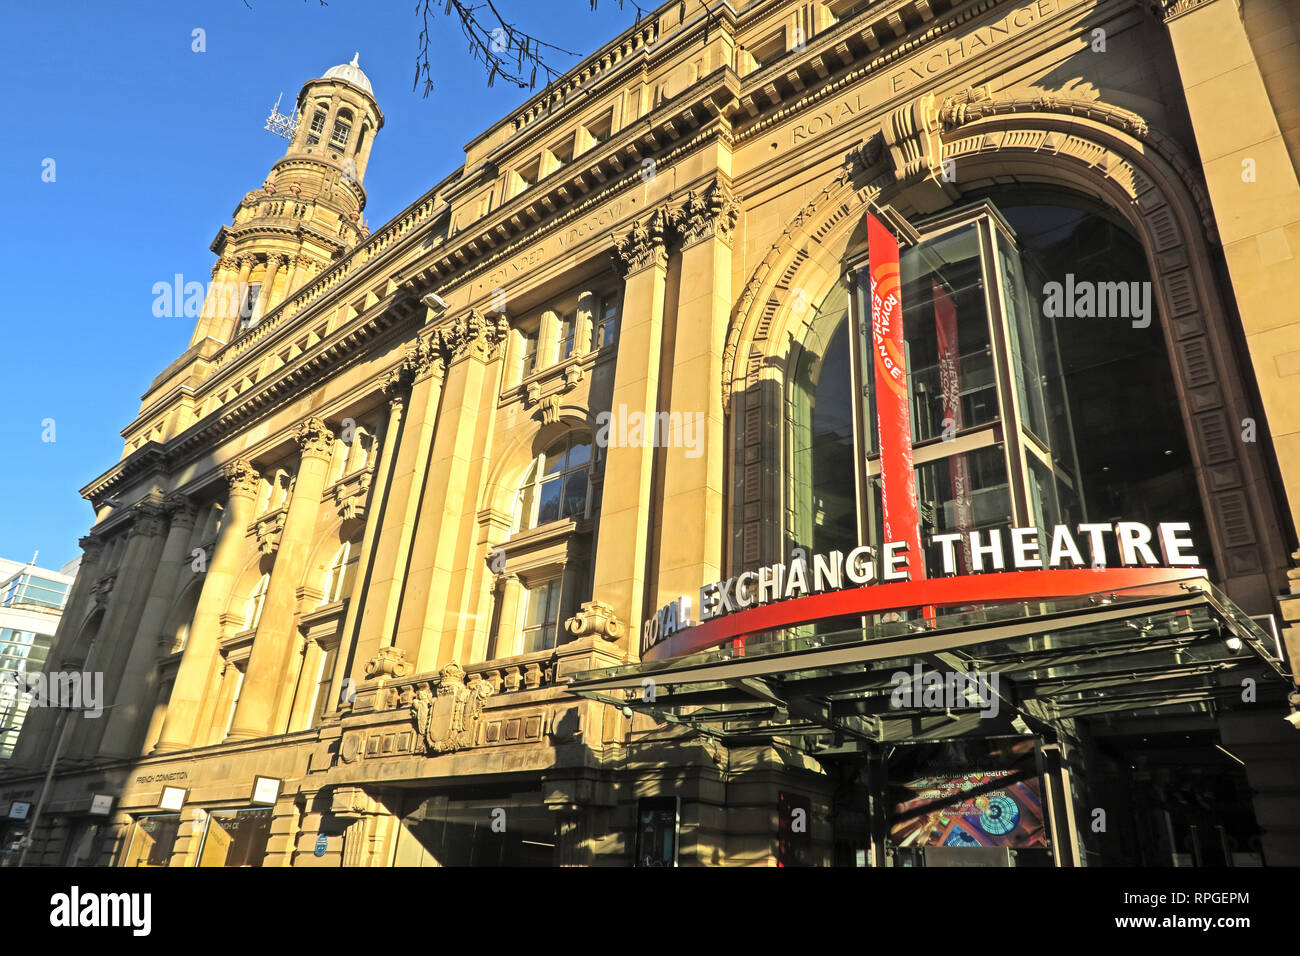 Royal Exchange Theatre, St Anns Square, Manchester City Centre, North West England, UK - Stock Image